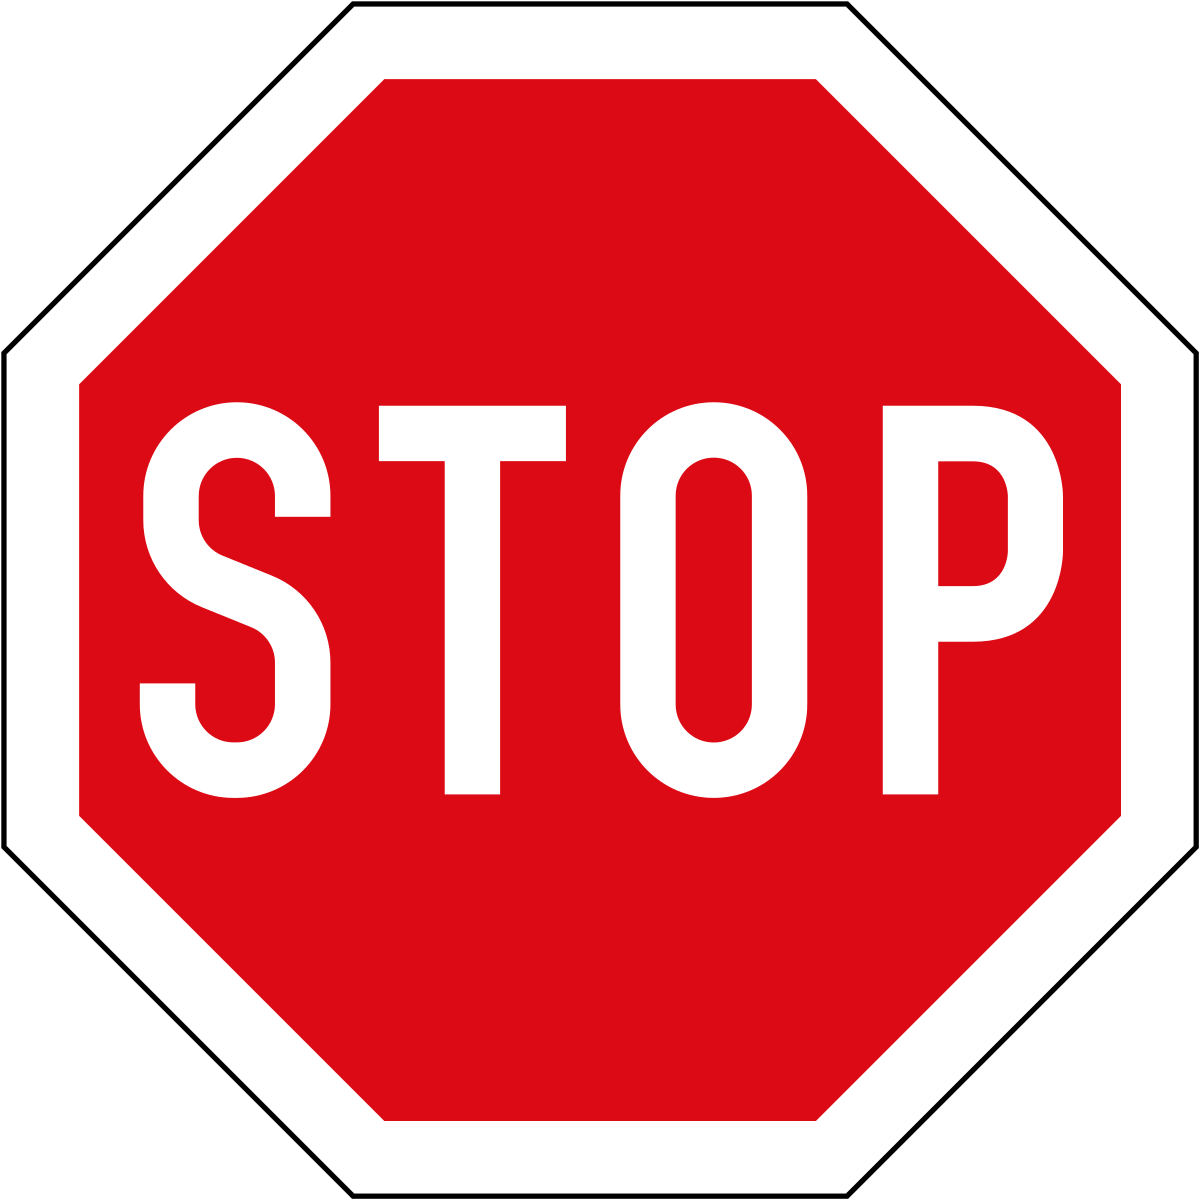 clipart road signboard